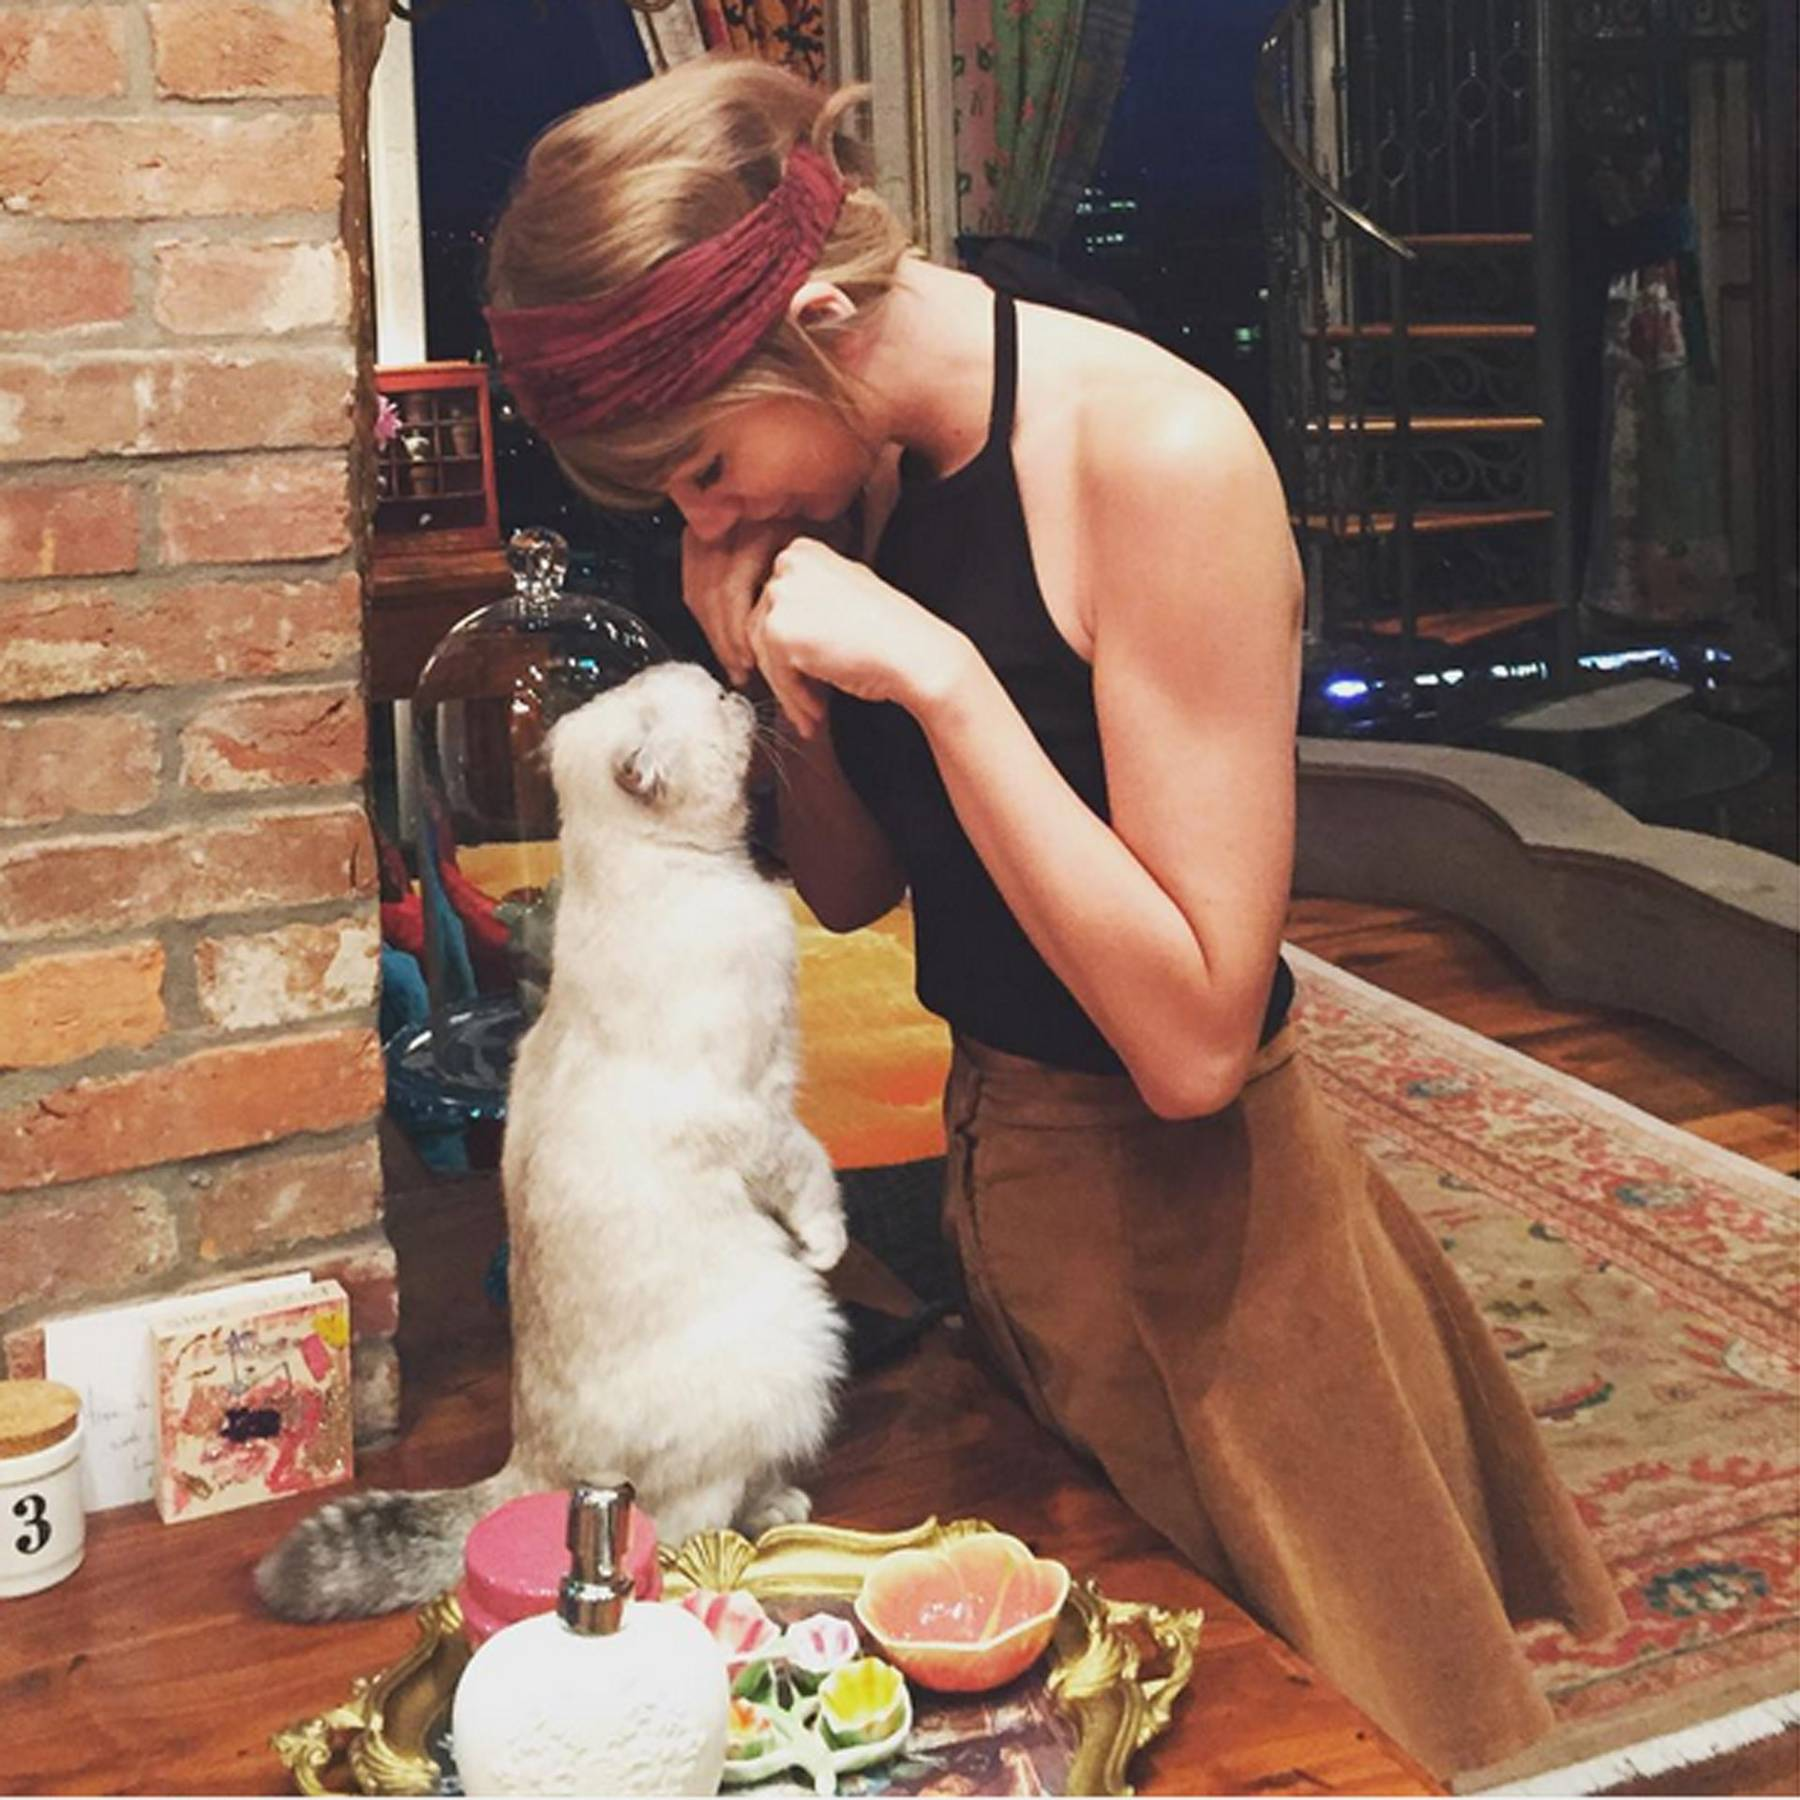 Taylor Swift Instagram Followers Most Followers In The World Glamour Uk